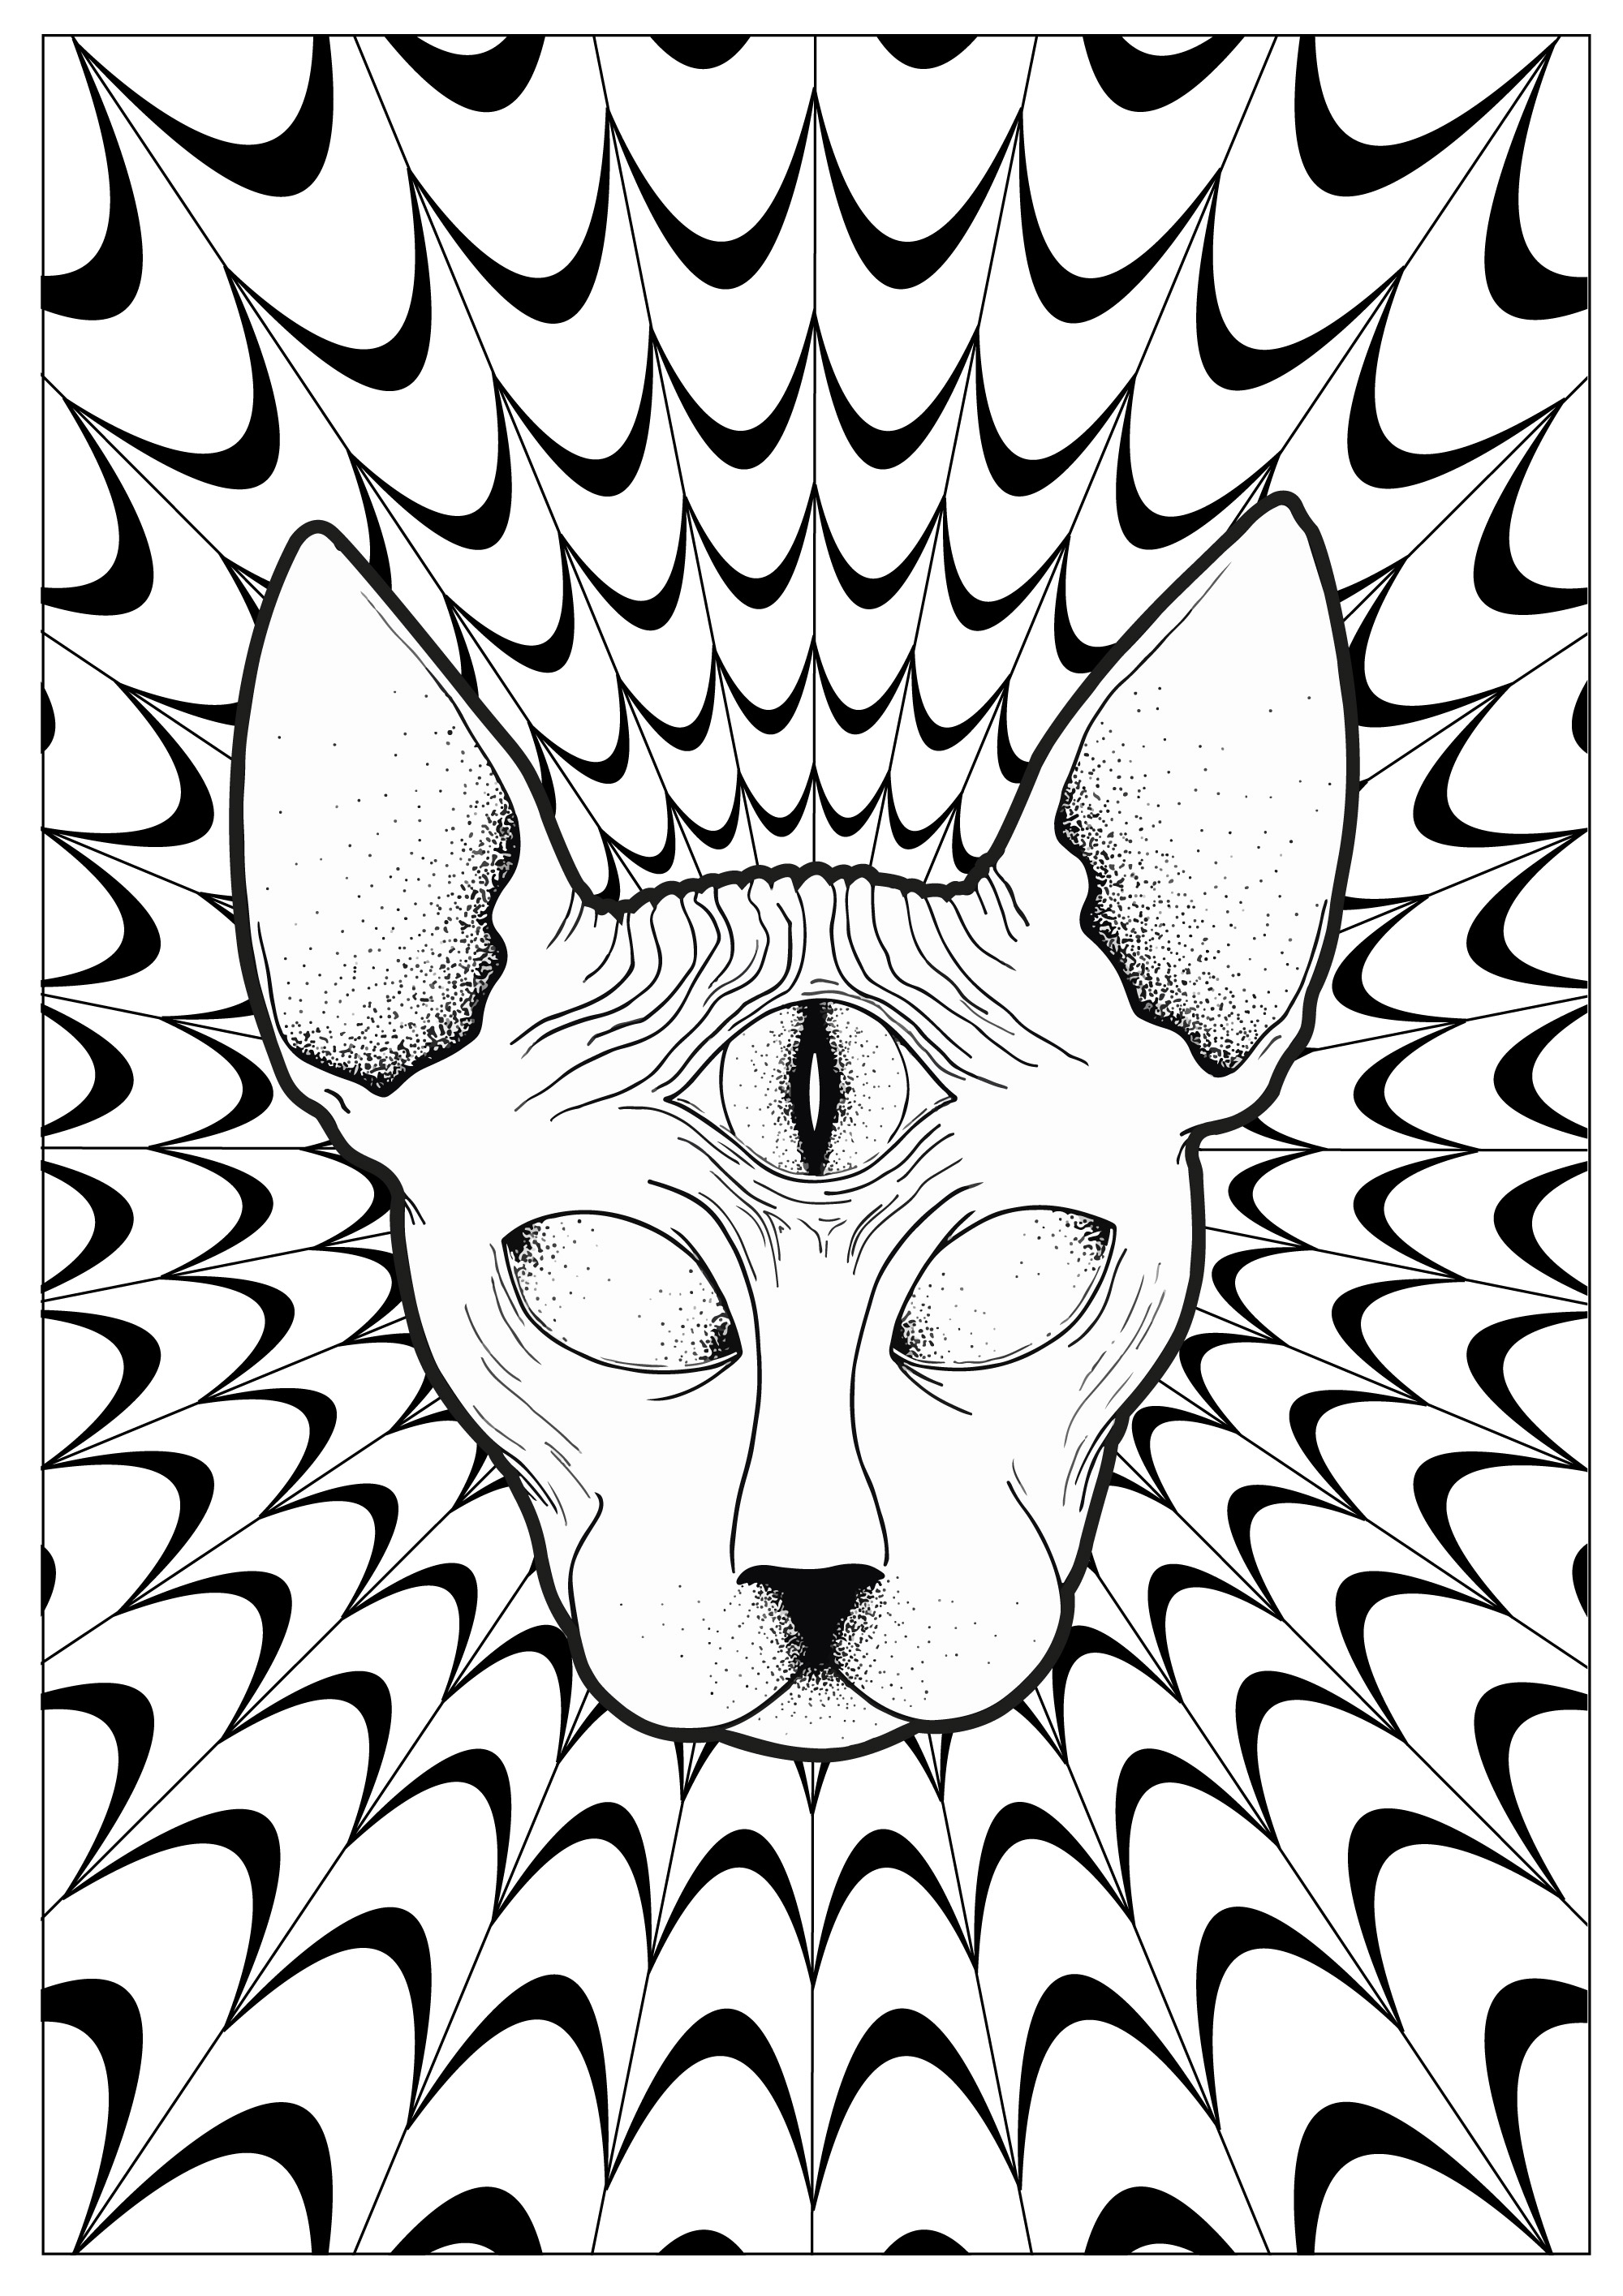 A sphinx with the third eye, on a psychedelic backgroundFrom the gallery : PsychedelicArtist : Louise